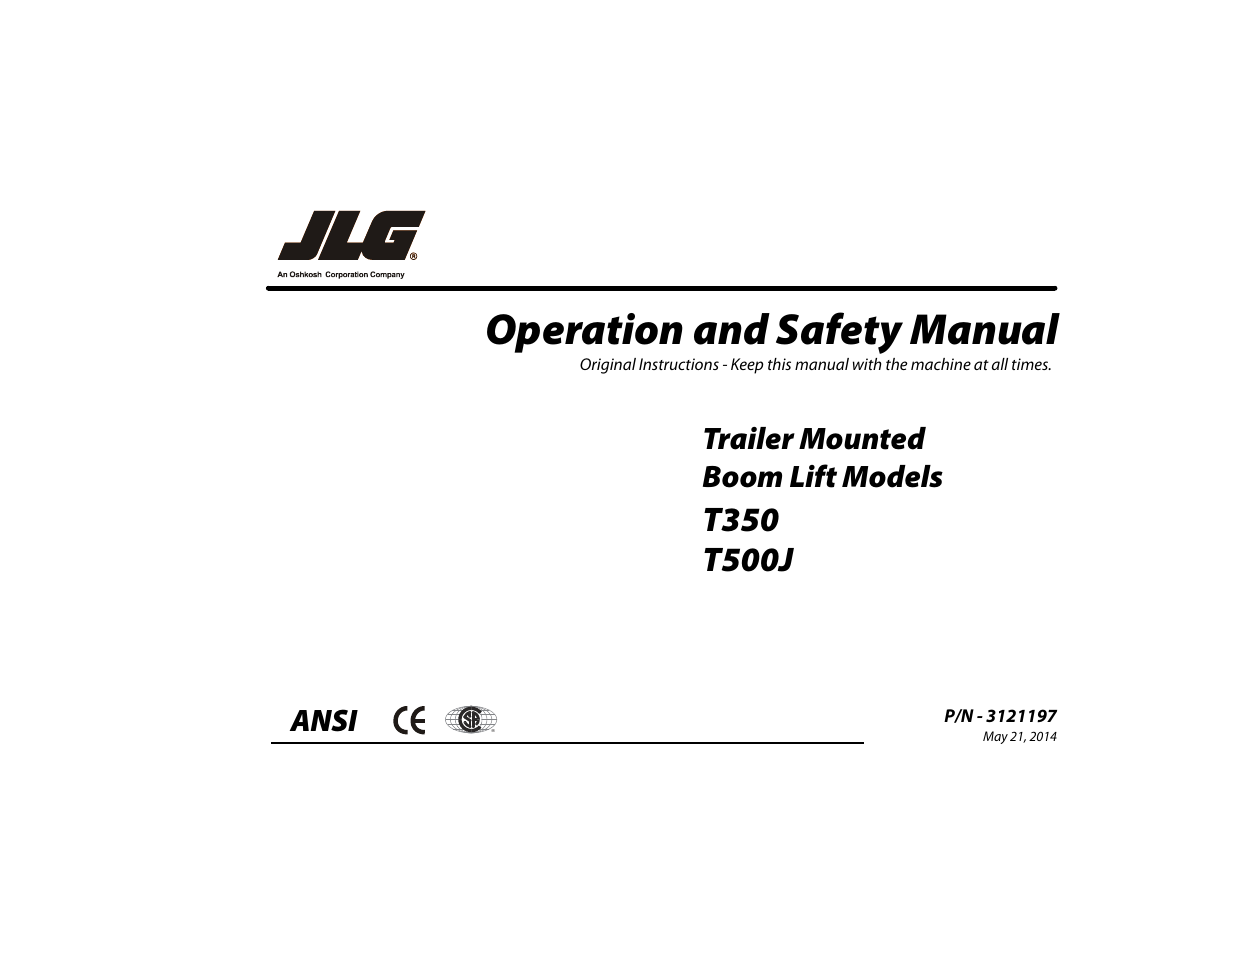 Jlg T500j Operator Manual User 132 Pages Also For T350 Charger Scissor Lift Wiring Diagram